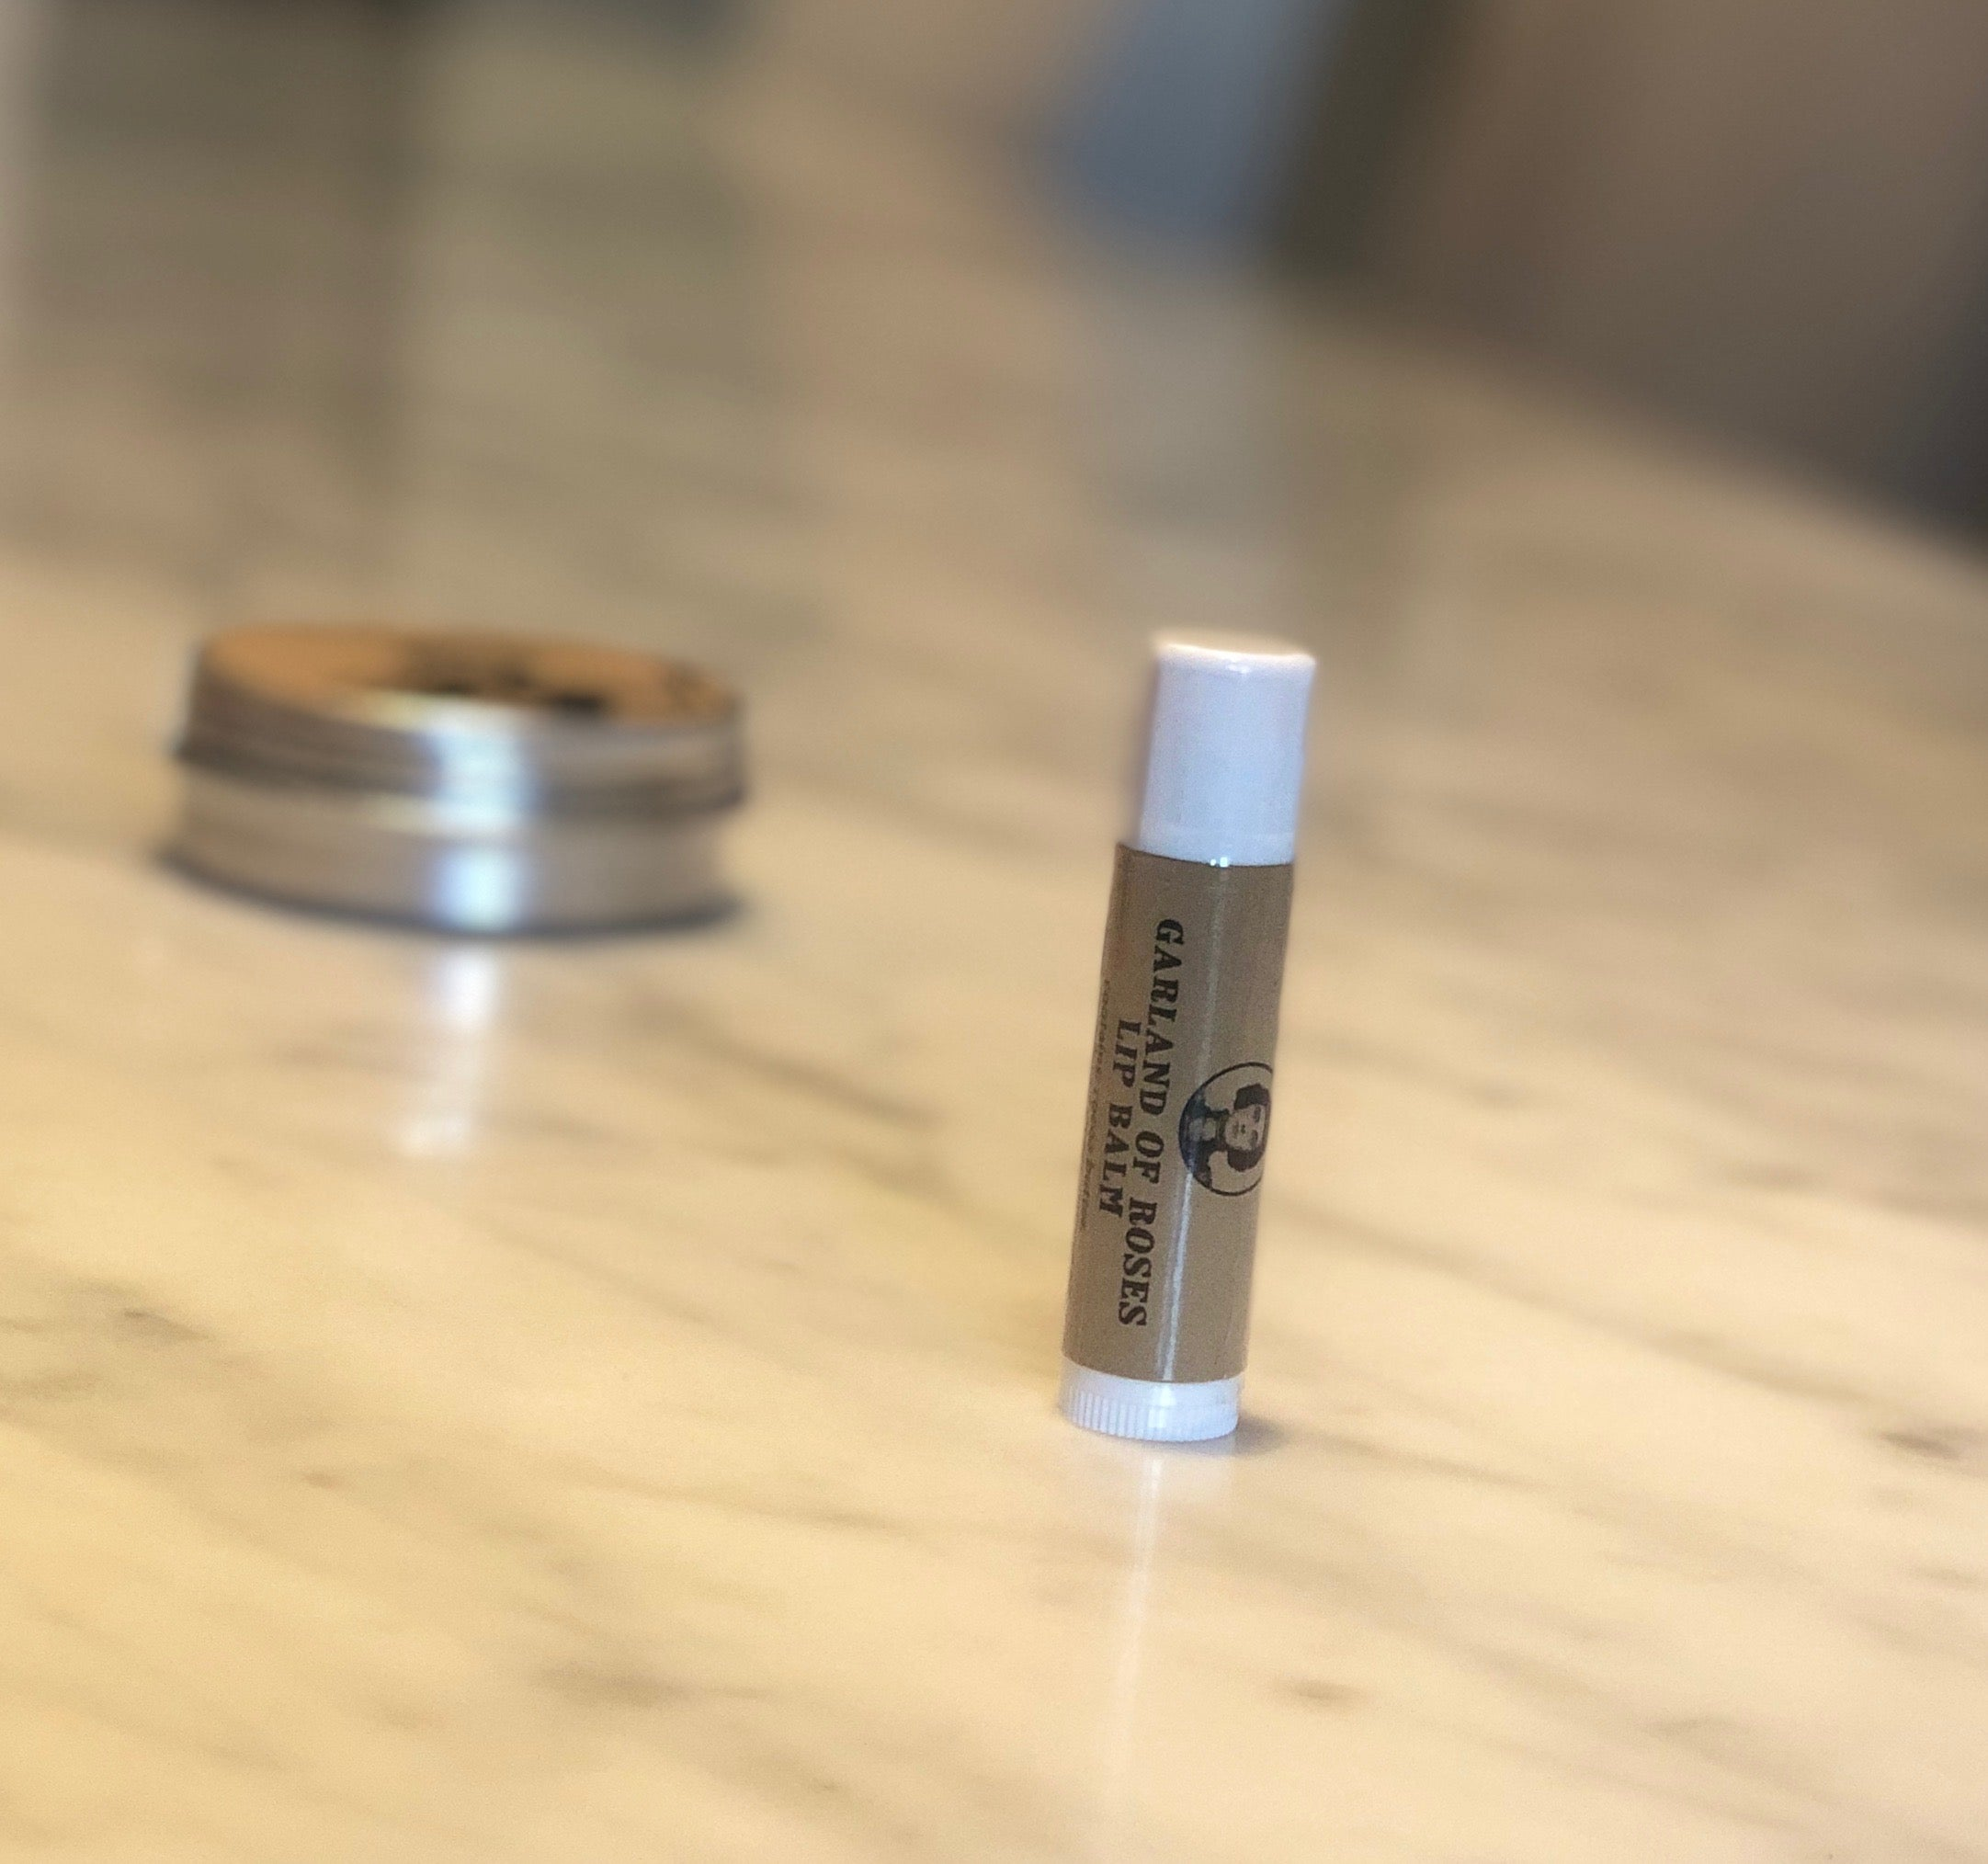 Garland of Roses Lip Balm